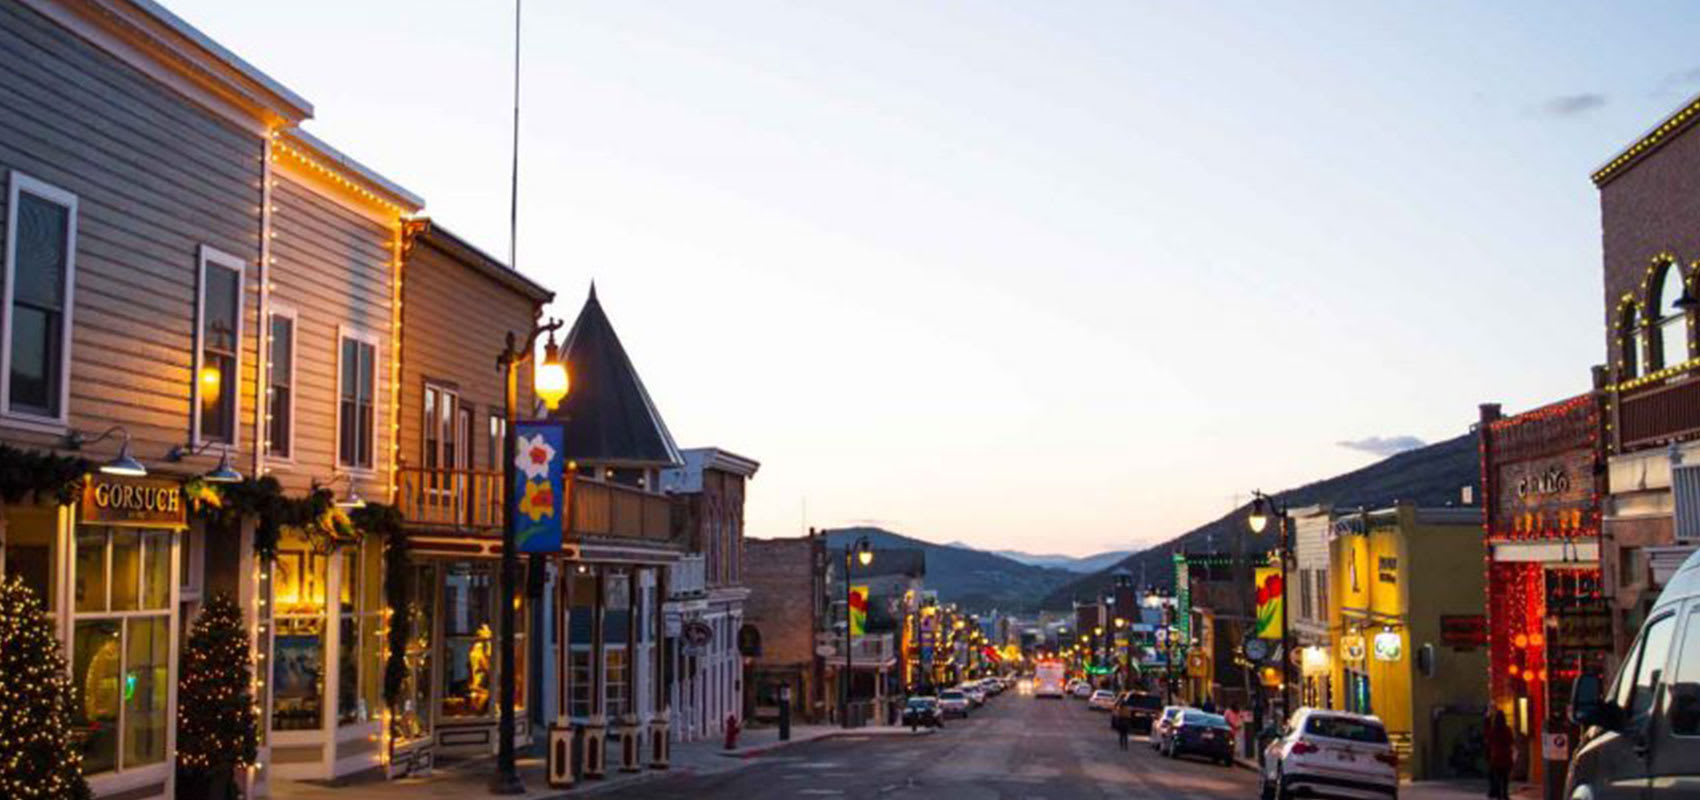 The Best Affordable Restaurants in Park City Image